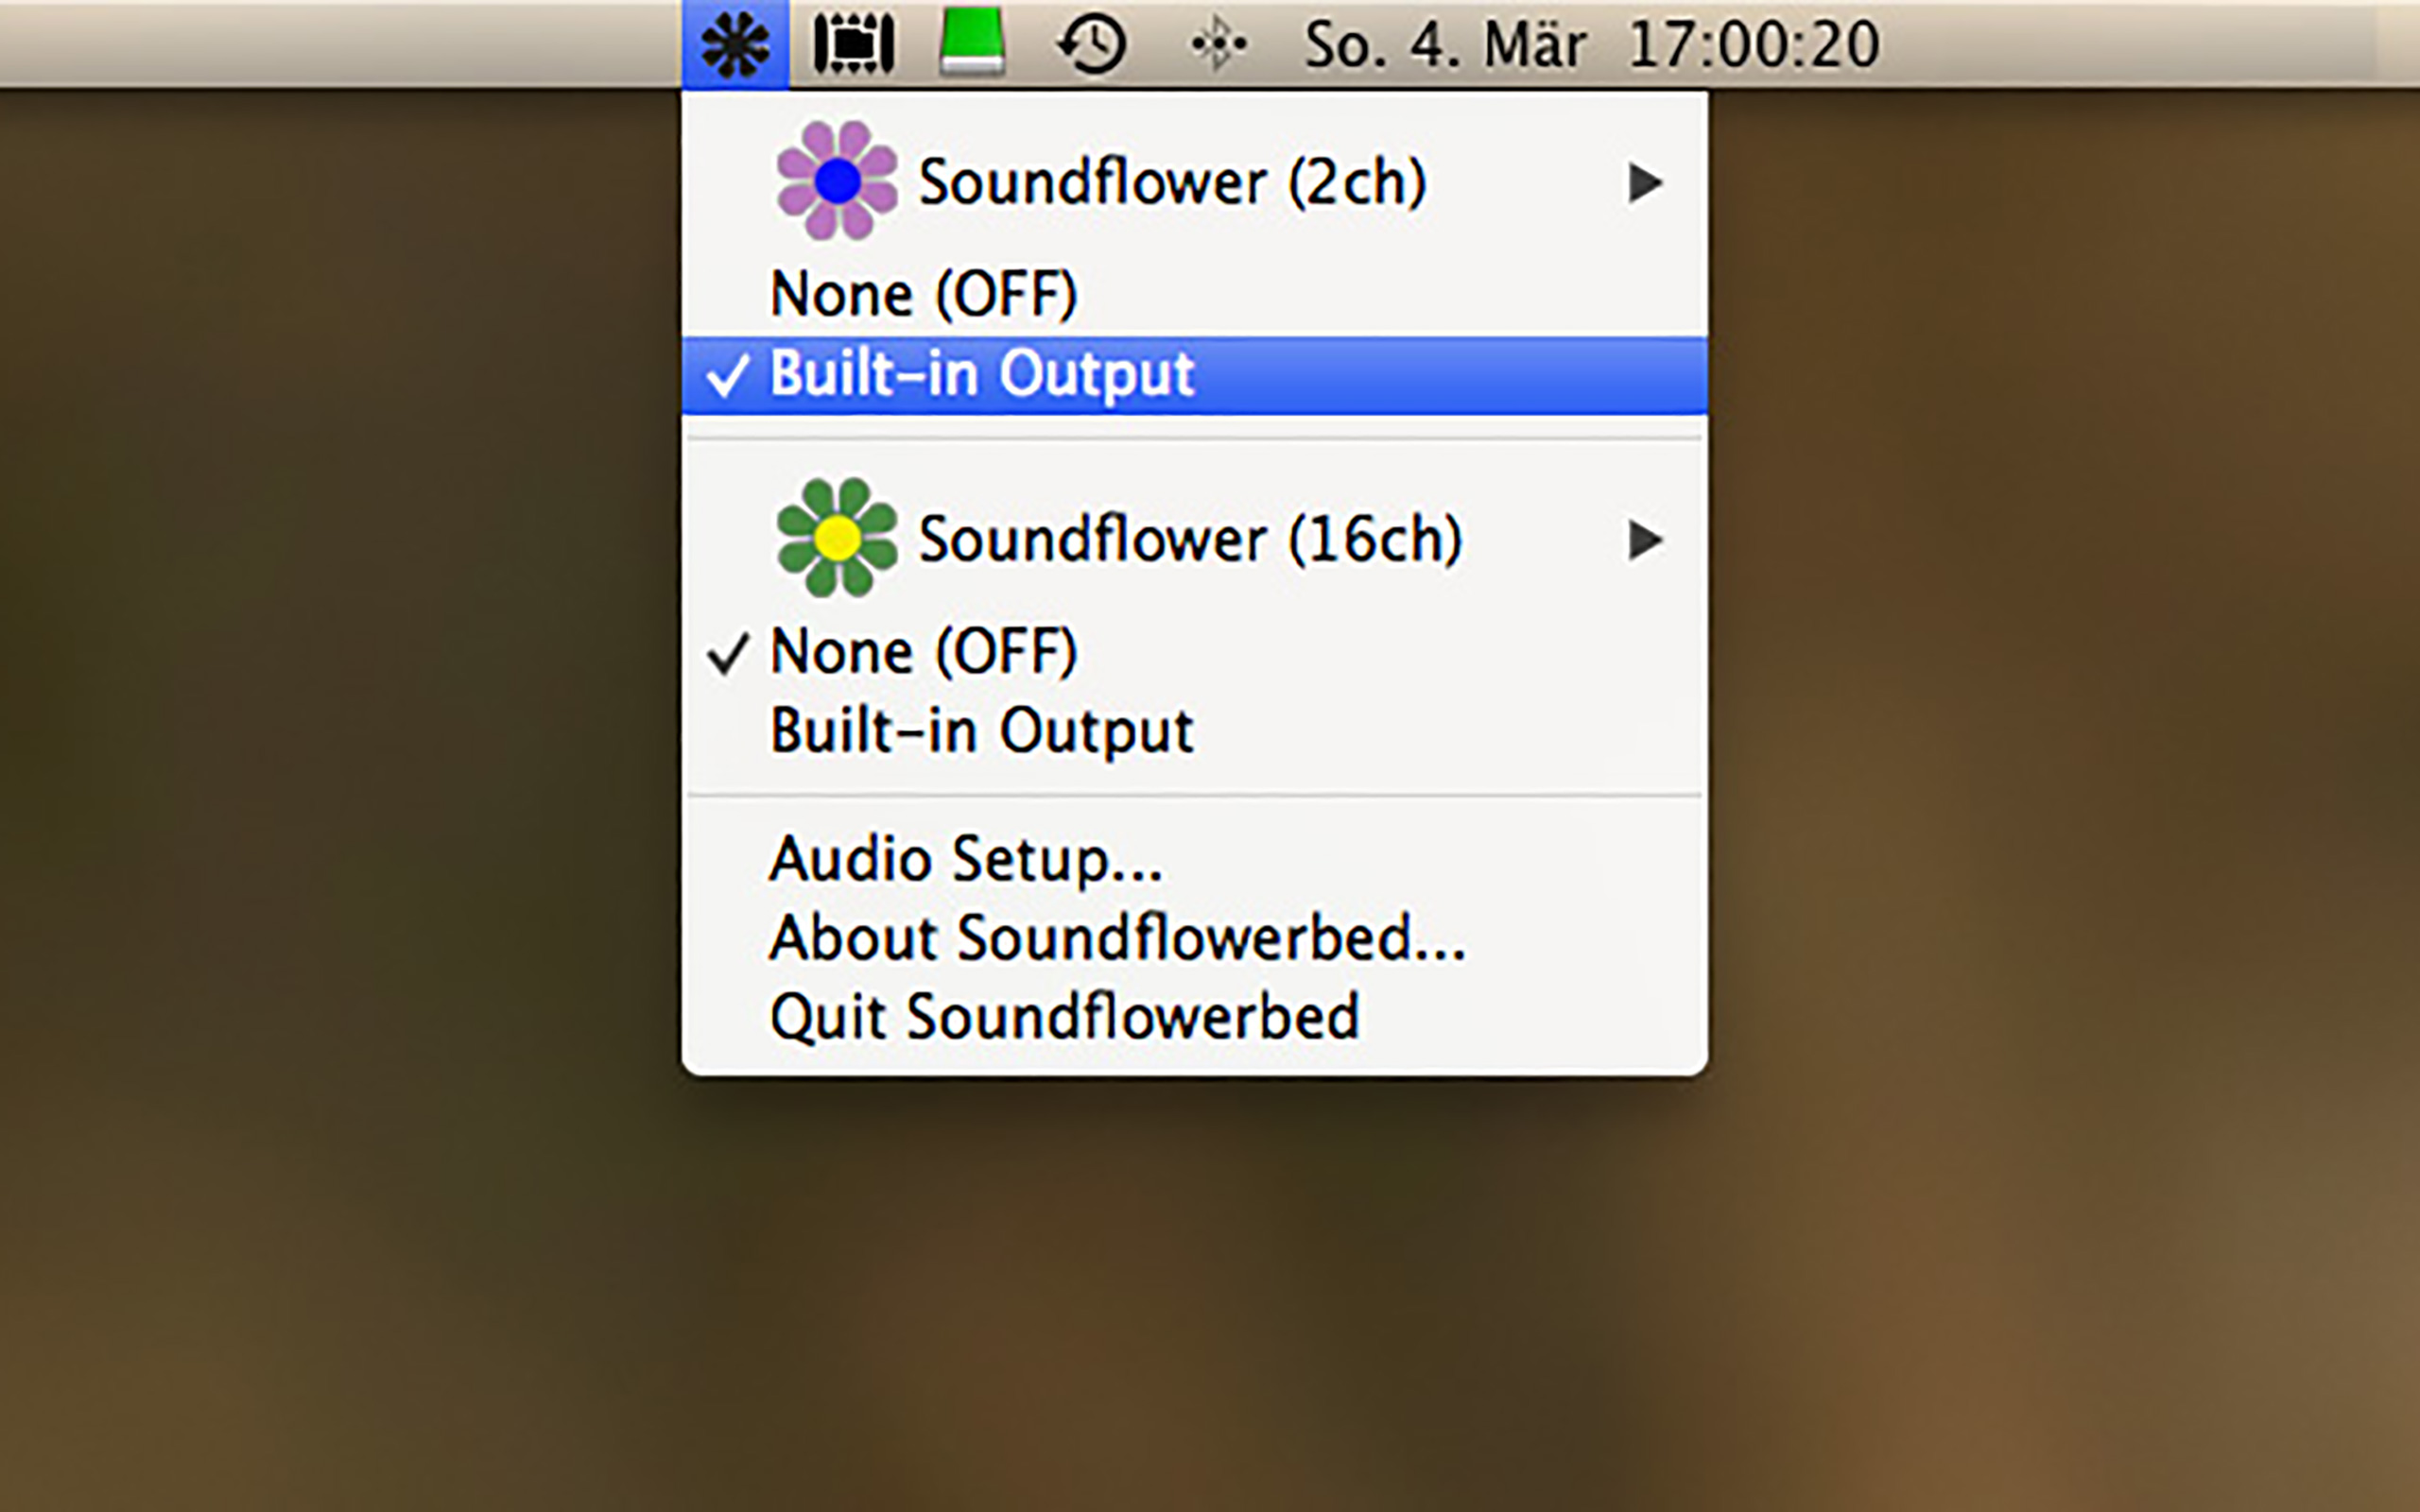 Soundflower 2ch Built-In Output